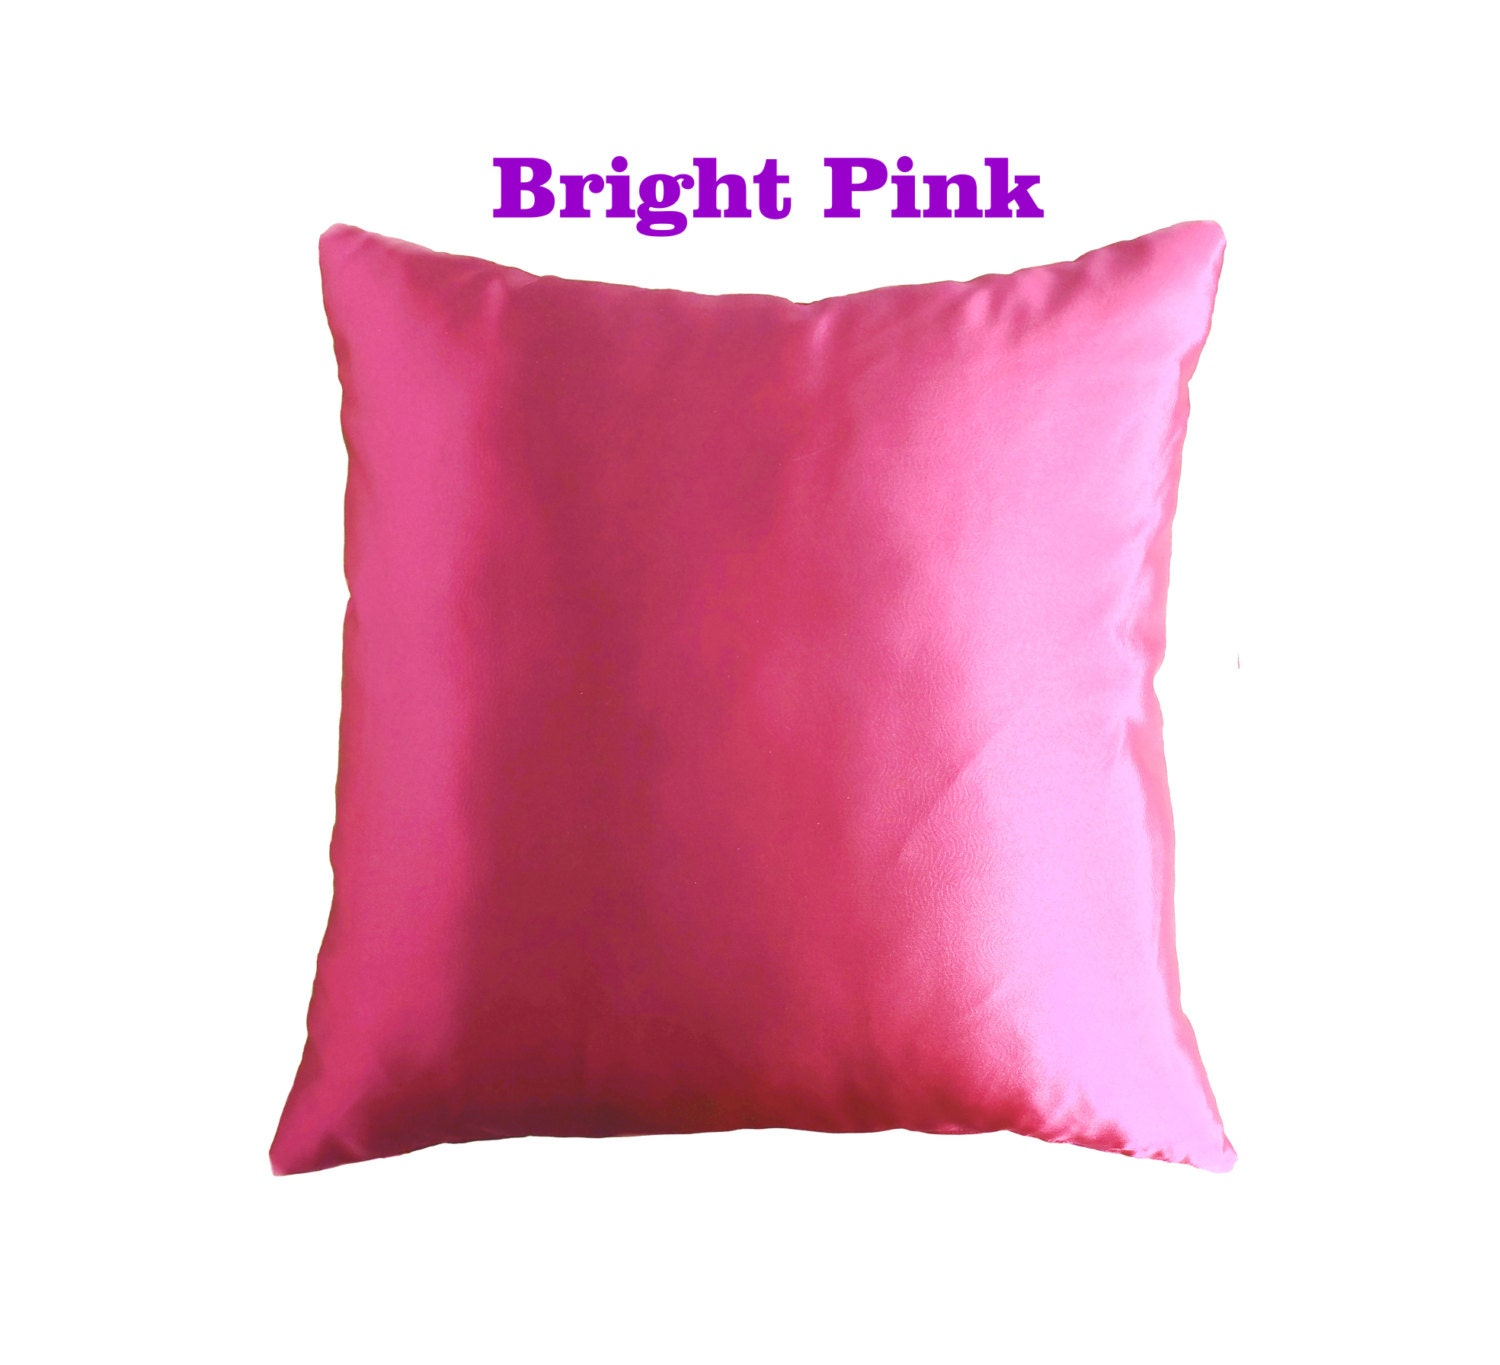 Light Pink Satin Throw Pillows : satin throw pillow light pink pillow purple satin pillow